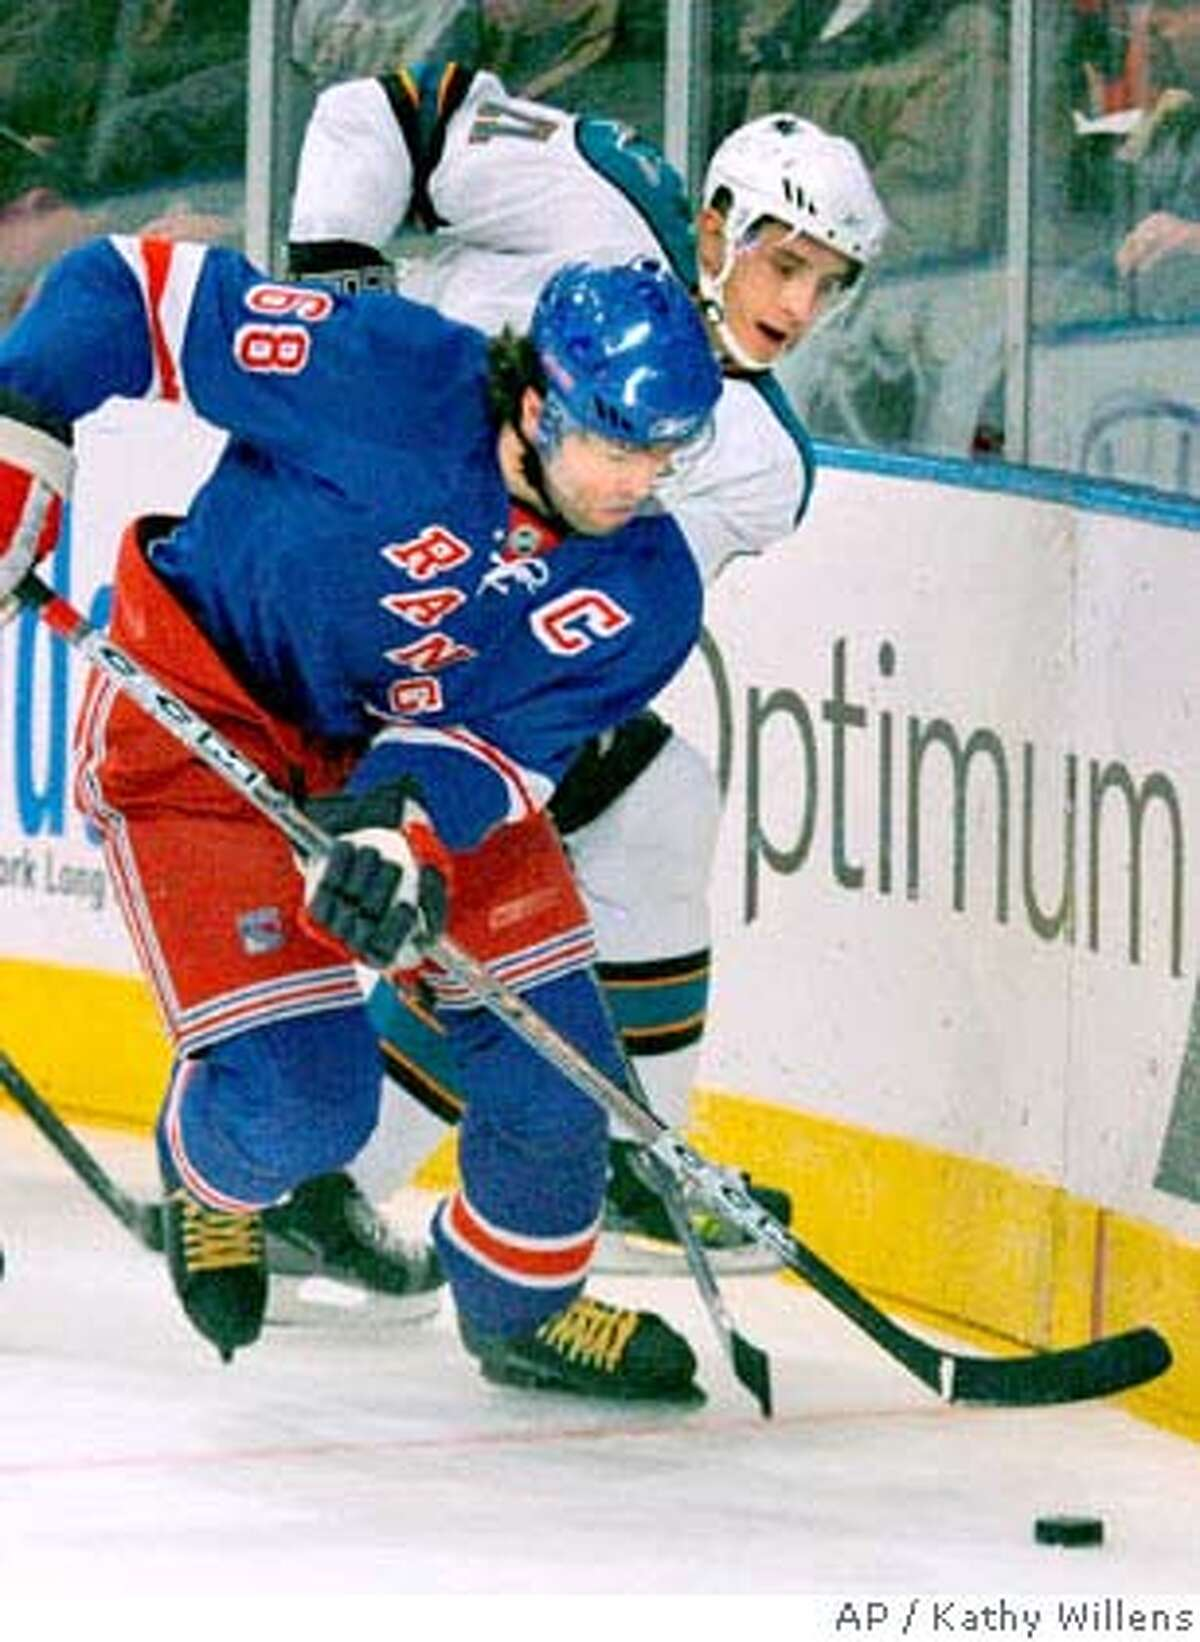 New York Rangers right wing Jaromir Jagr (68), of the Czech Republic, and San Jose Sharks defenseman Alexei Semenov (21), of Russia, battle for the puck behind the net at Madison Square Garden in New York, Sunday, Feb. 17, 2008. (AP Photo/Kathy Willens)